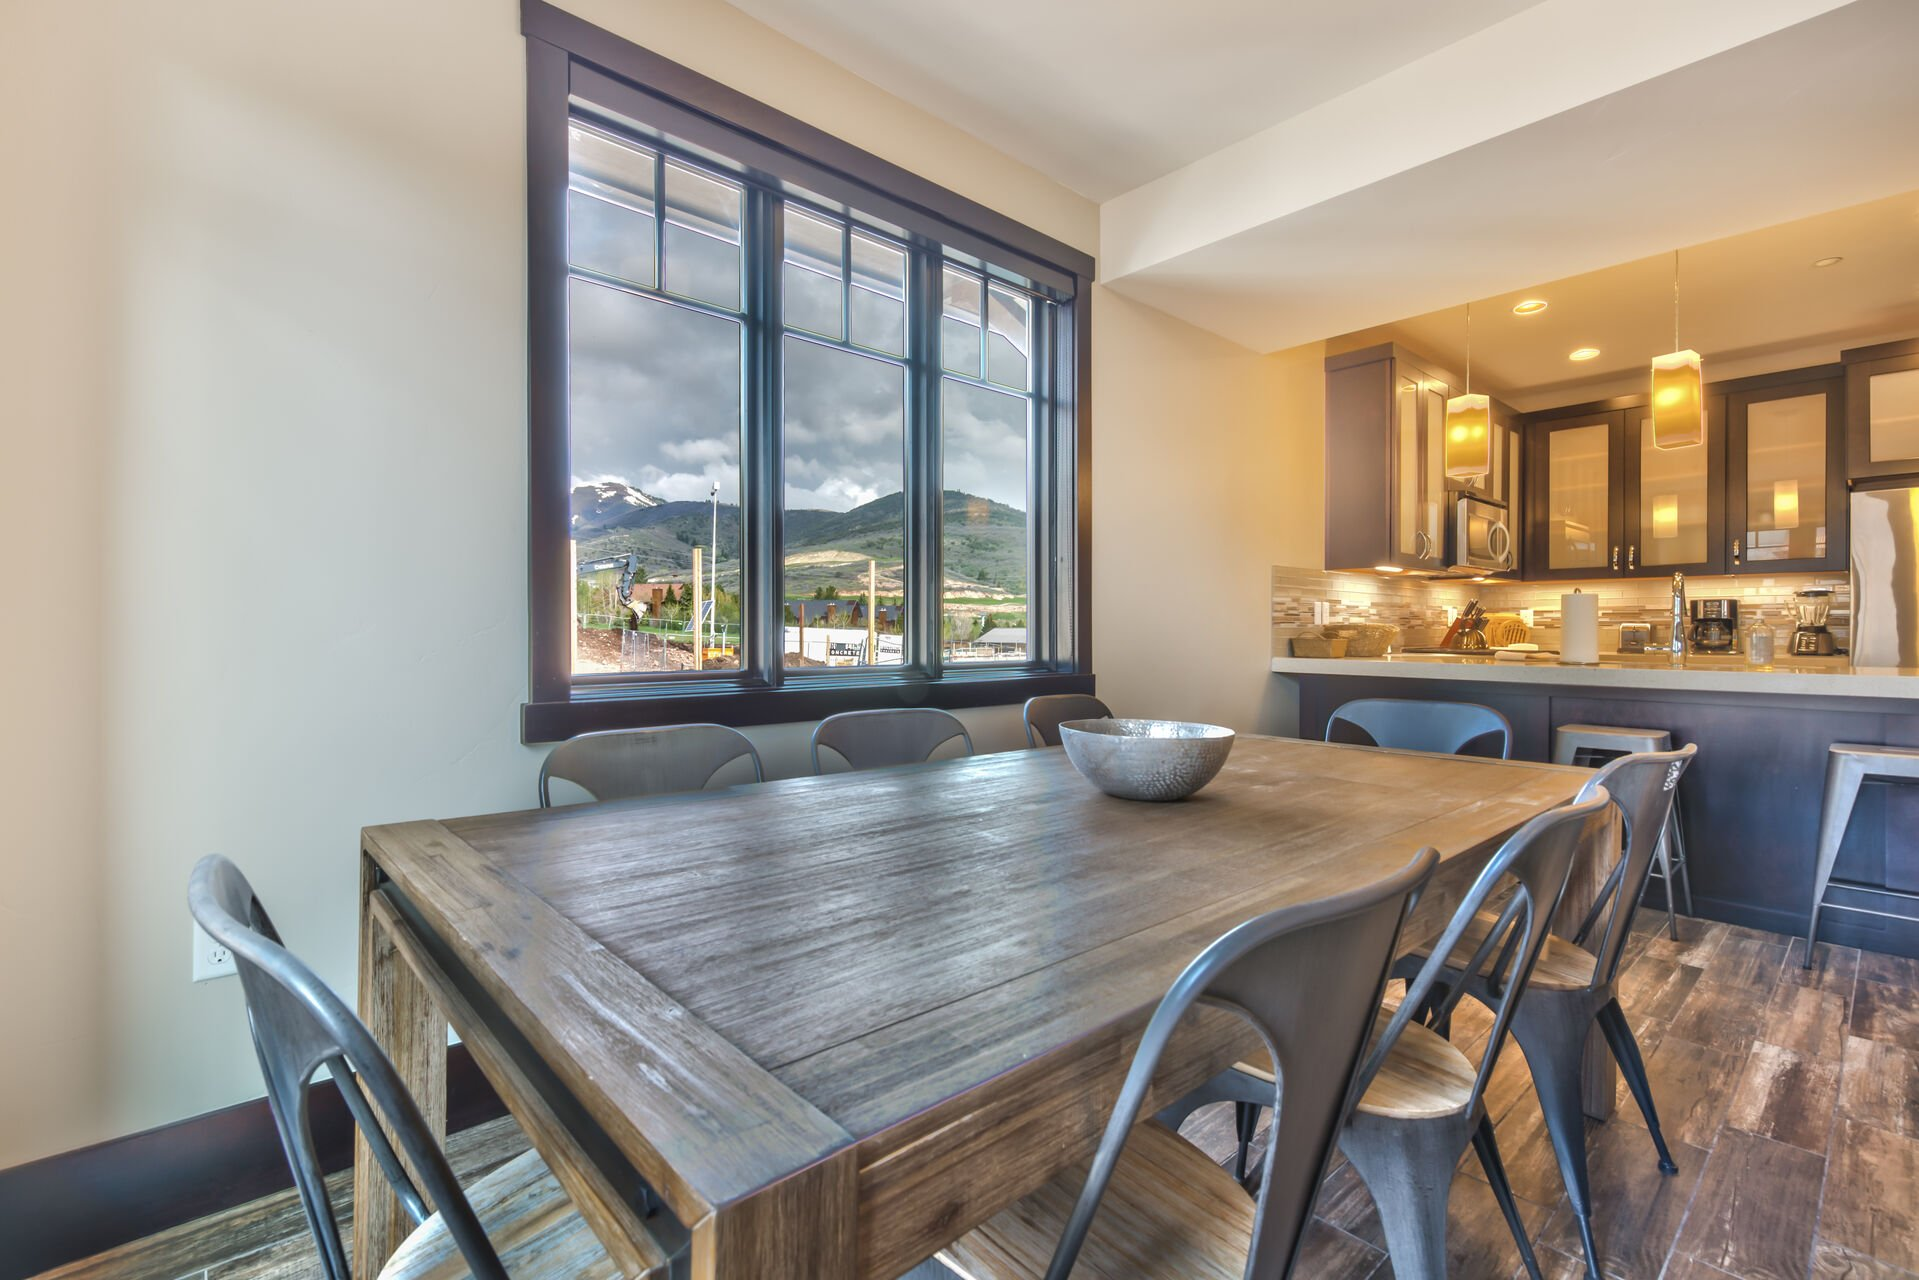 Dining Area Seating for 8